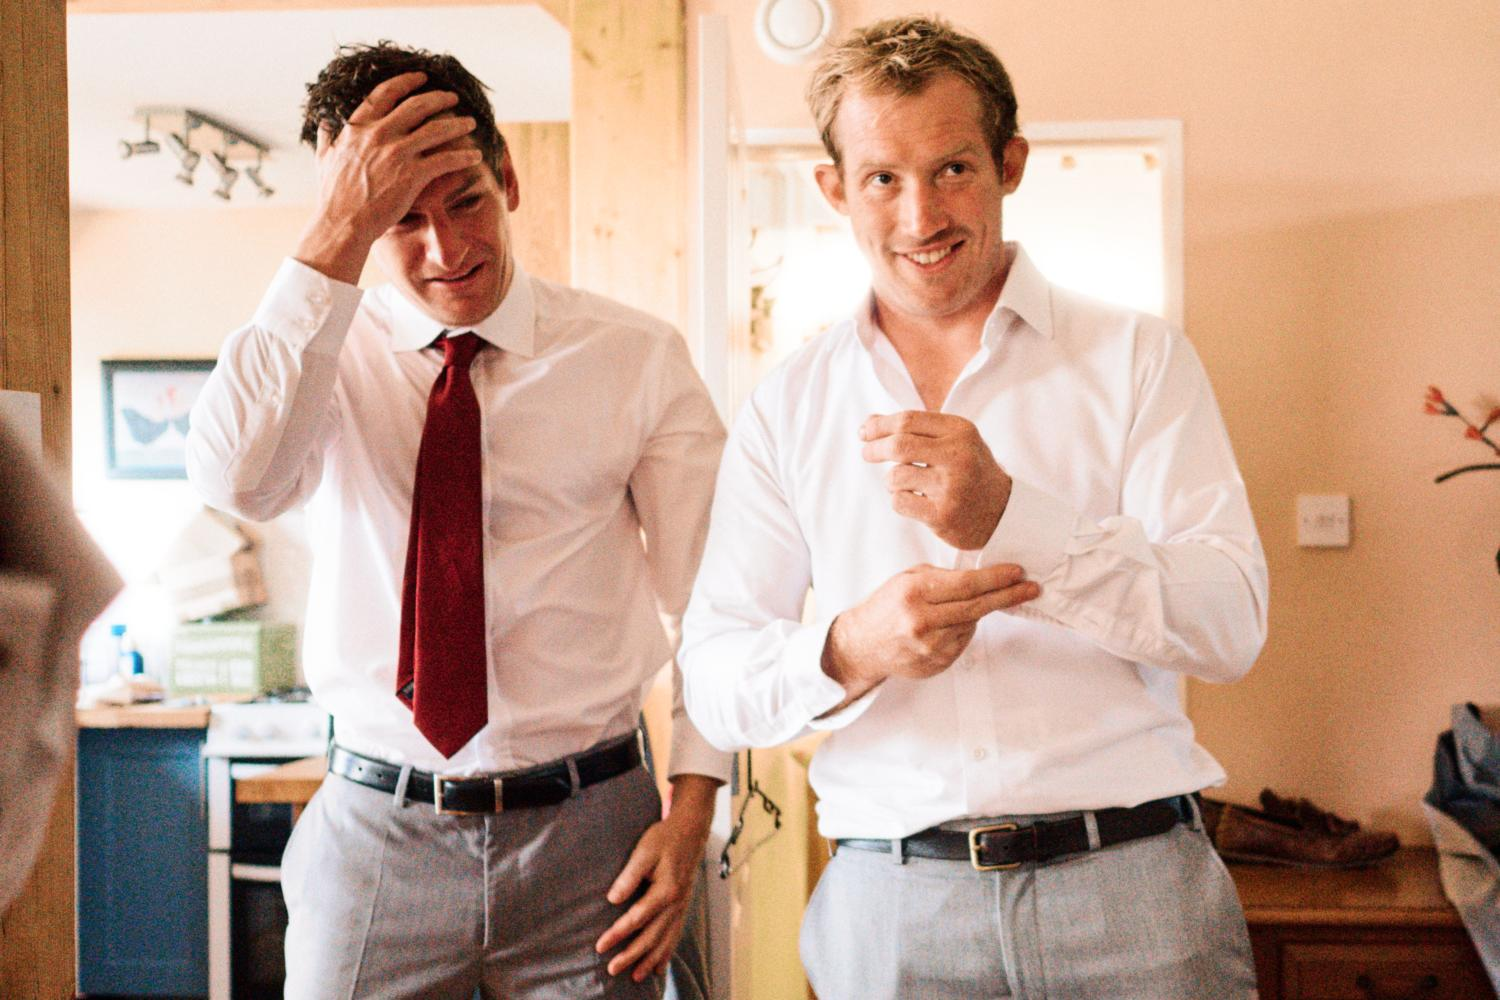 A groom fixes his cuff links with his friend